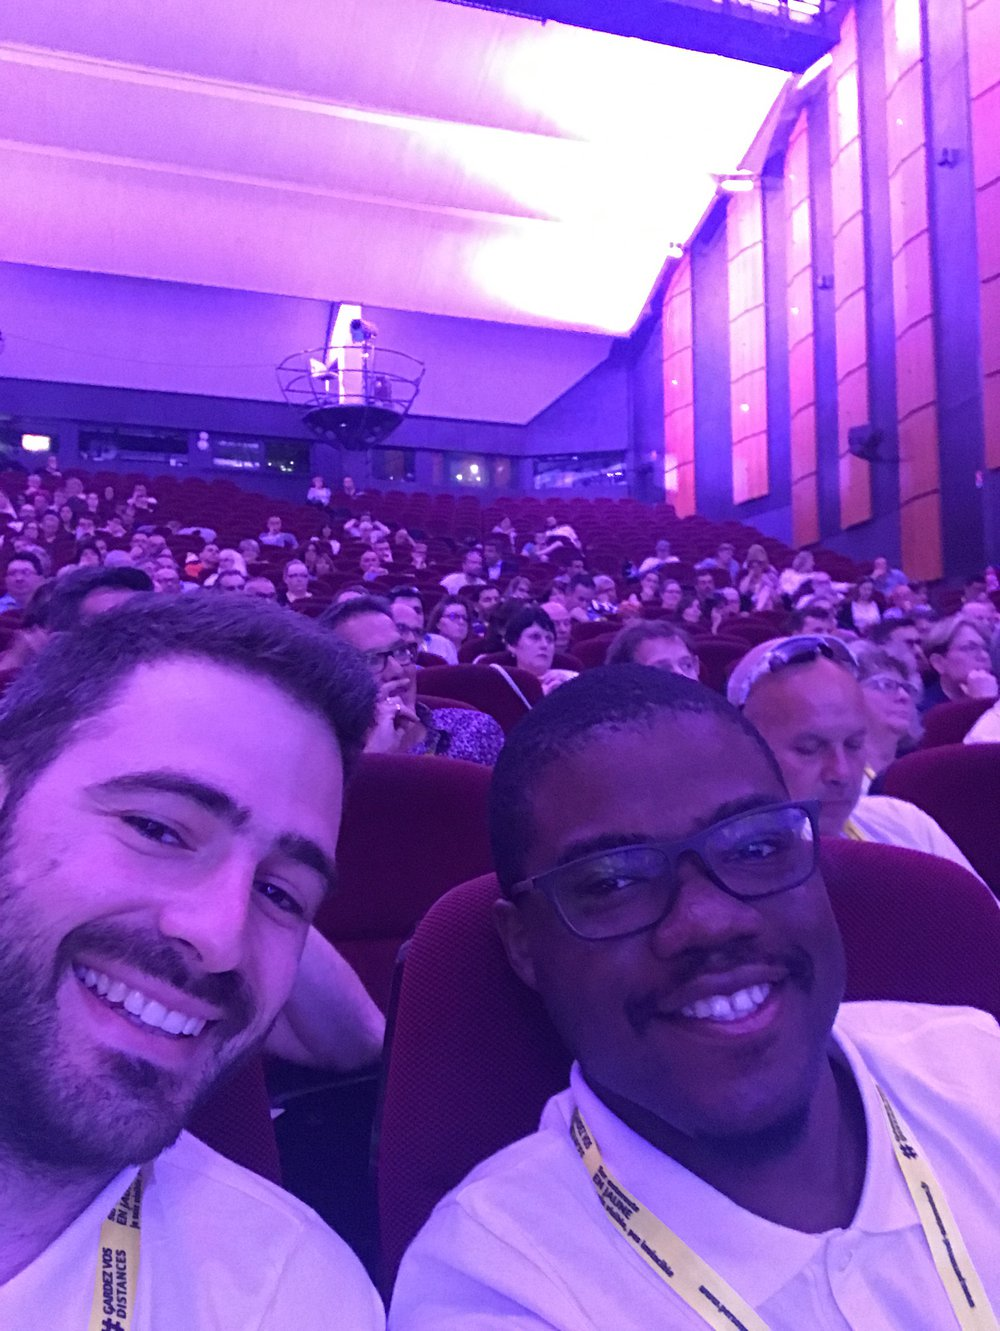 Romain BARRIER & Cédric QUADJOVIE avant le pitch au congrés